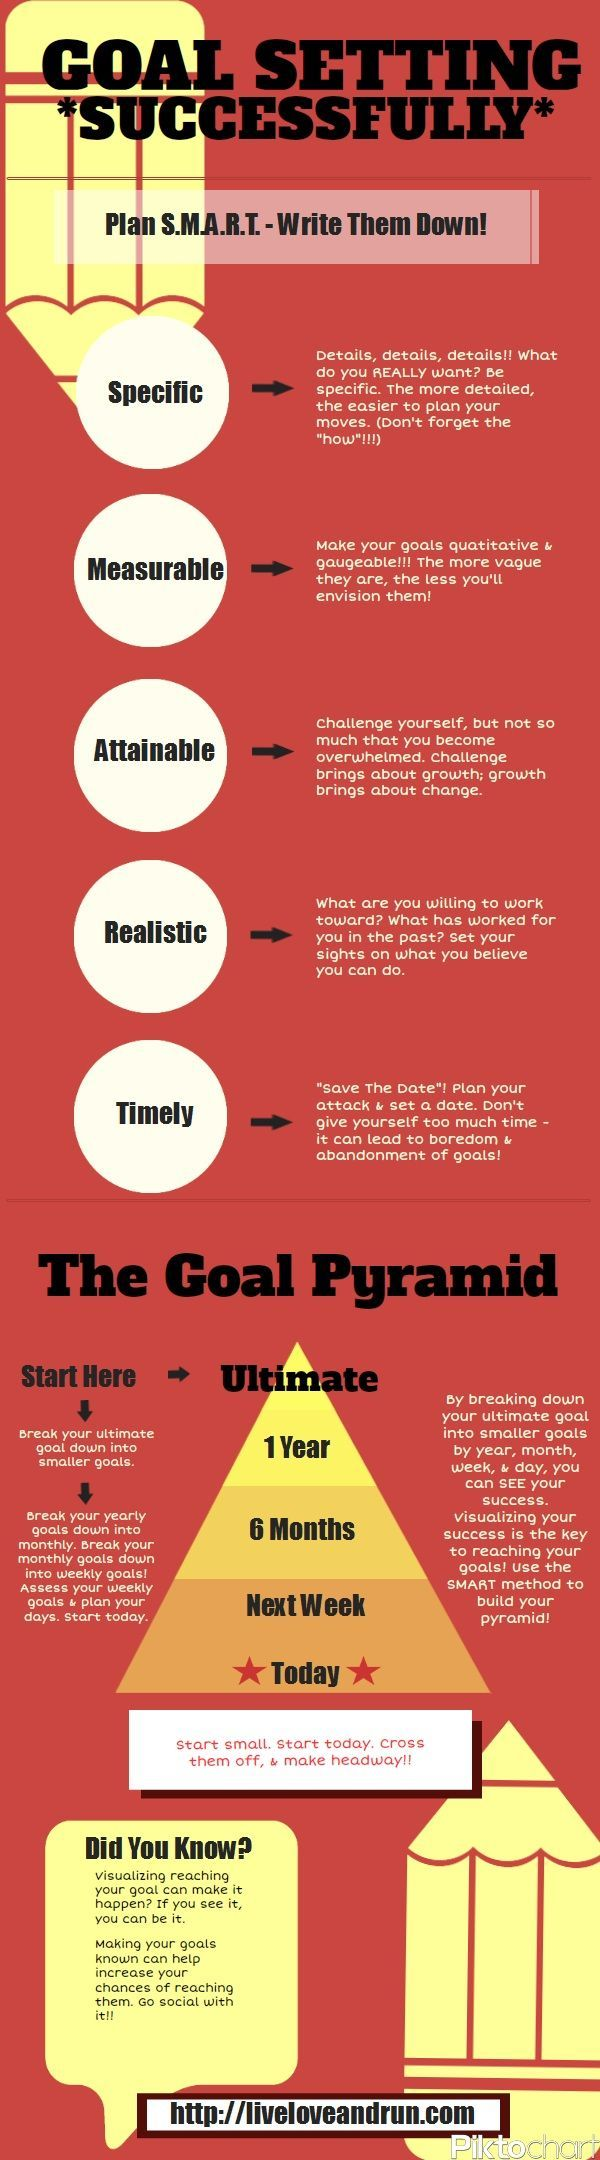 How To Successfully Set Goals #FitFluential http://liveloveandrun.com/2012/06/how-to-successfully-set-goals/